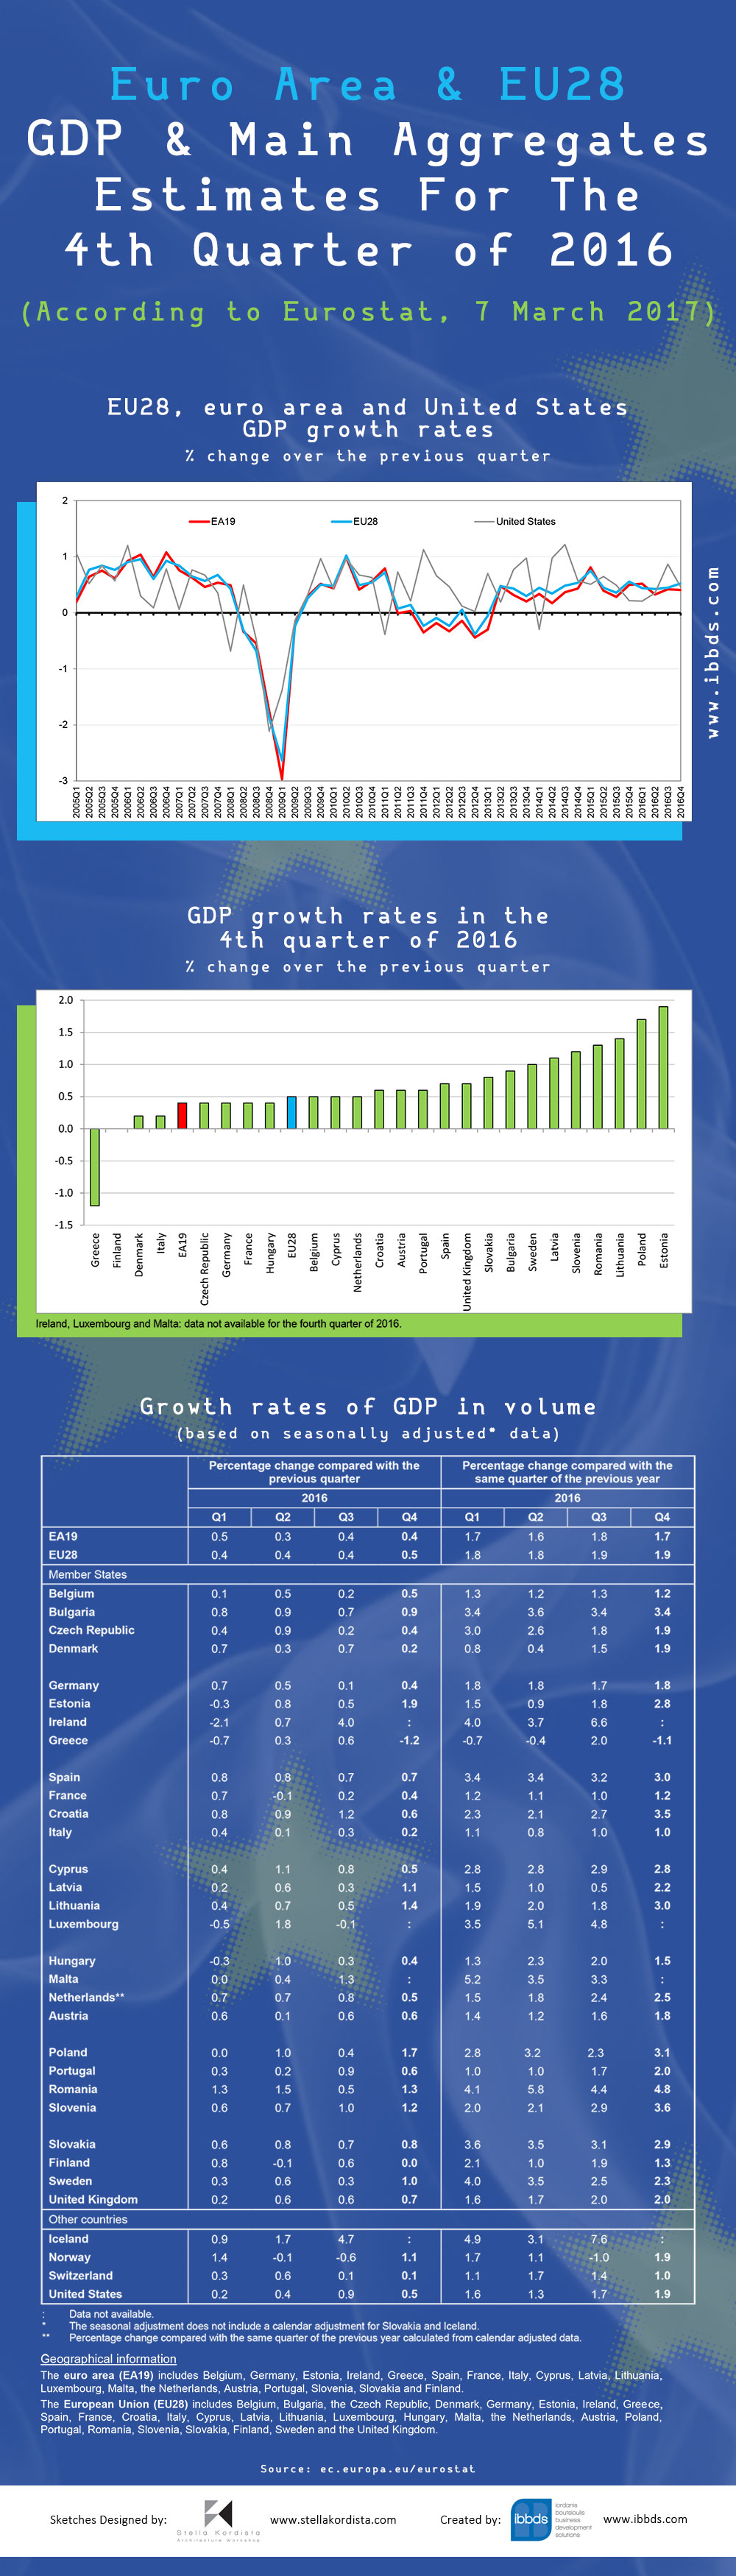 GDP and Main Aggregates Estimates For The Fourth Quarter of 2016 Infographic by ibbds